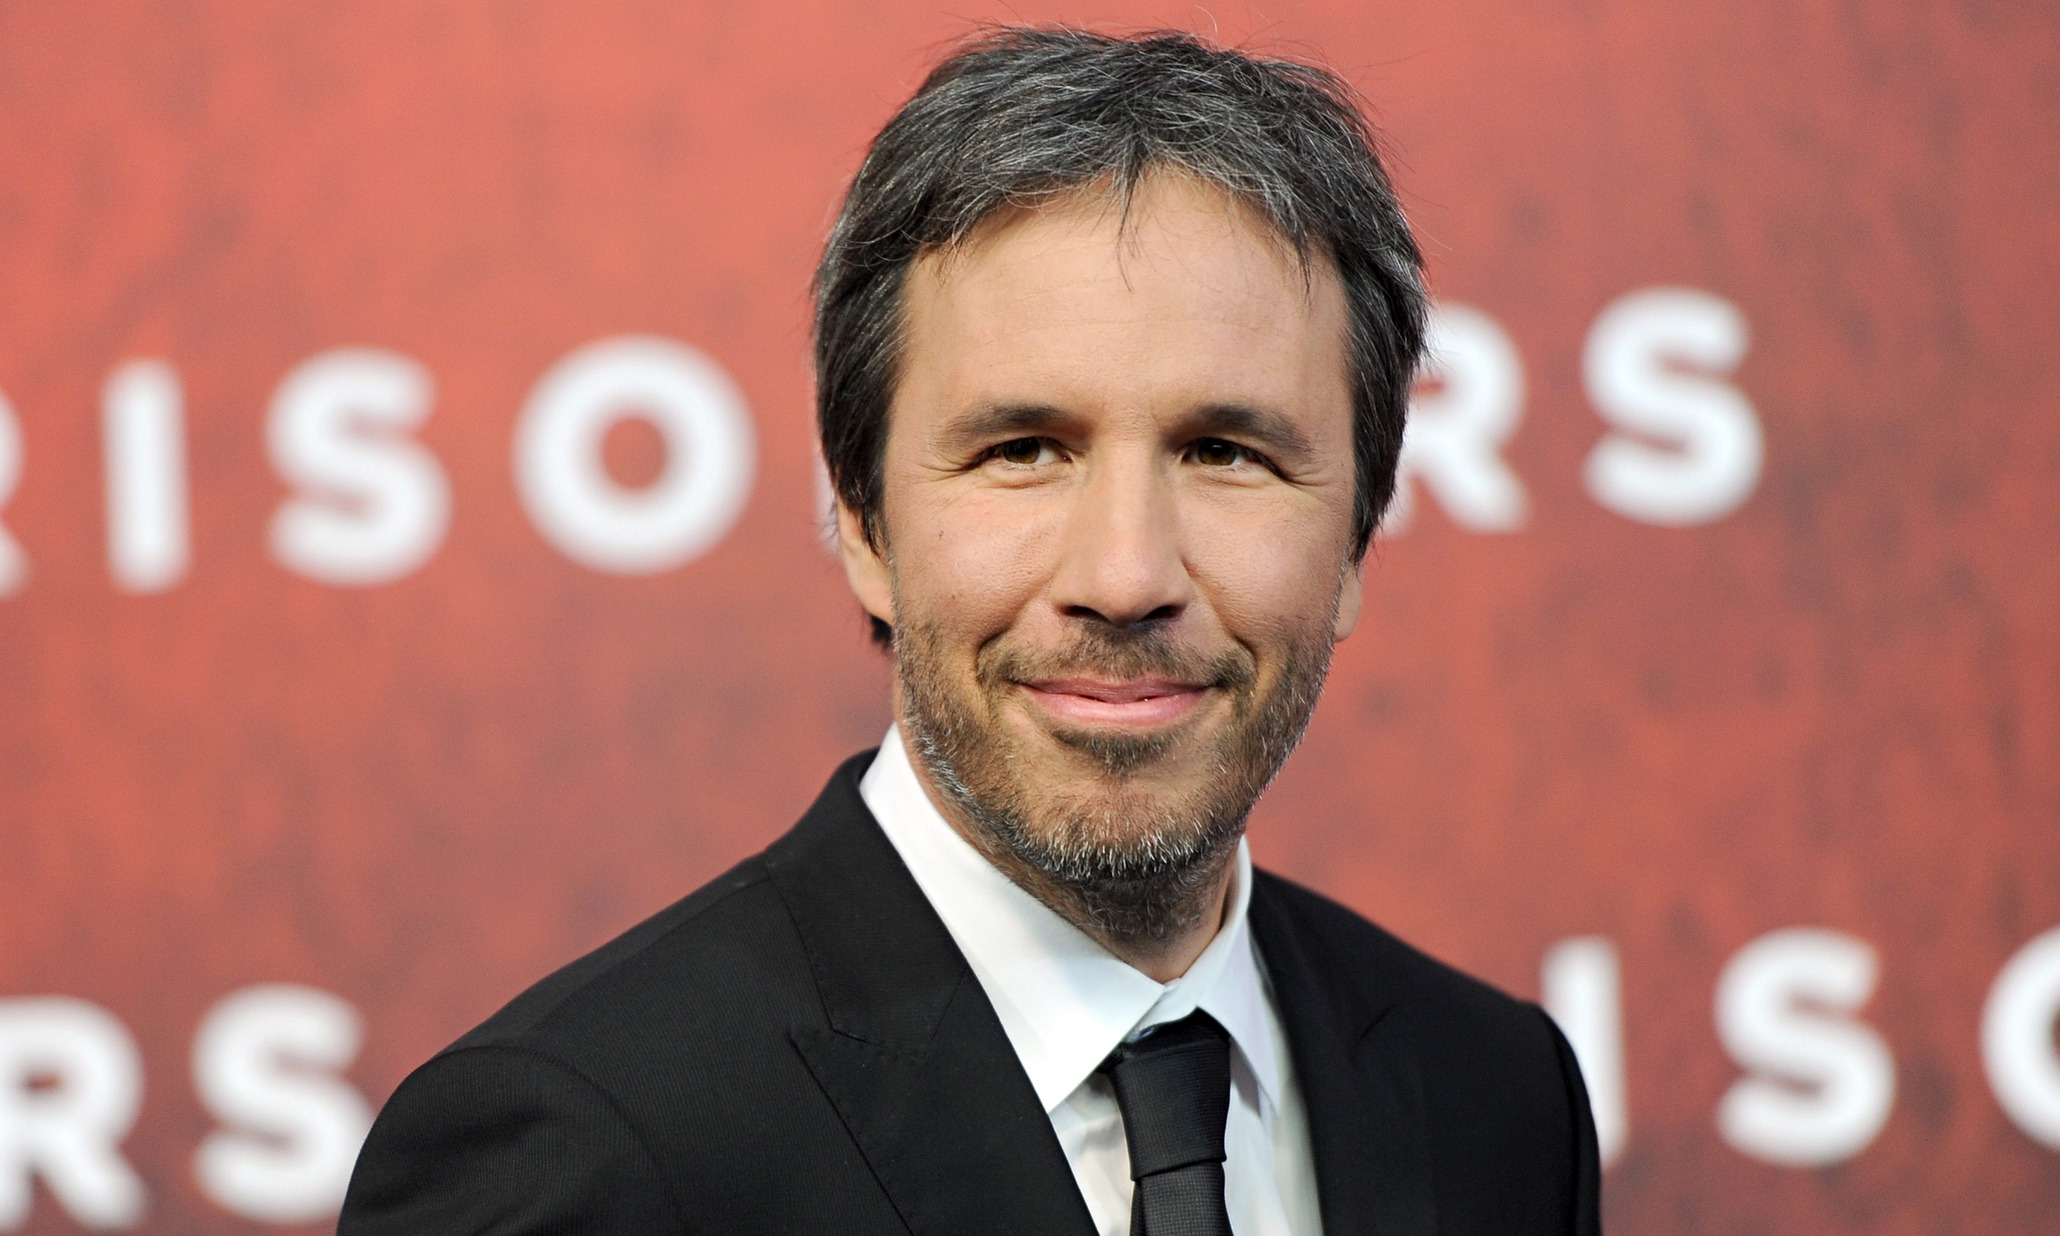 Denis Villeneuve earned a  million dollar salary, leaving the net worth at 7 million in 2017